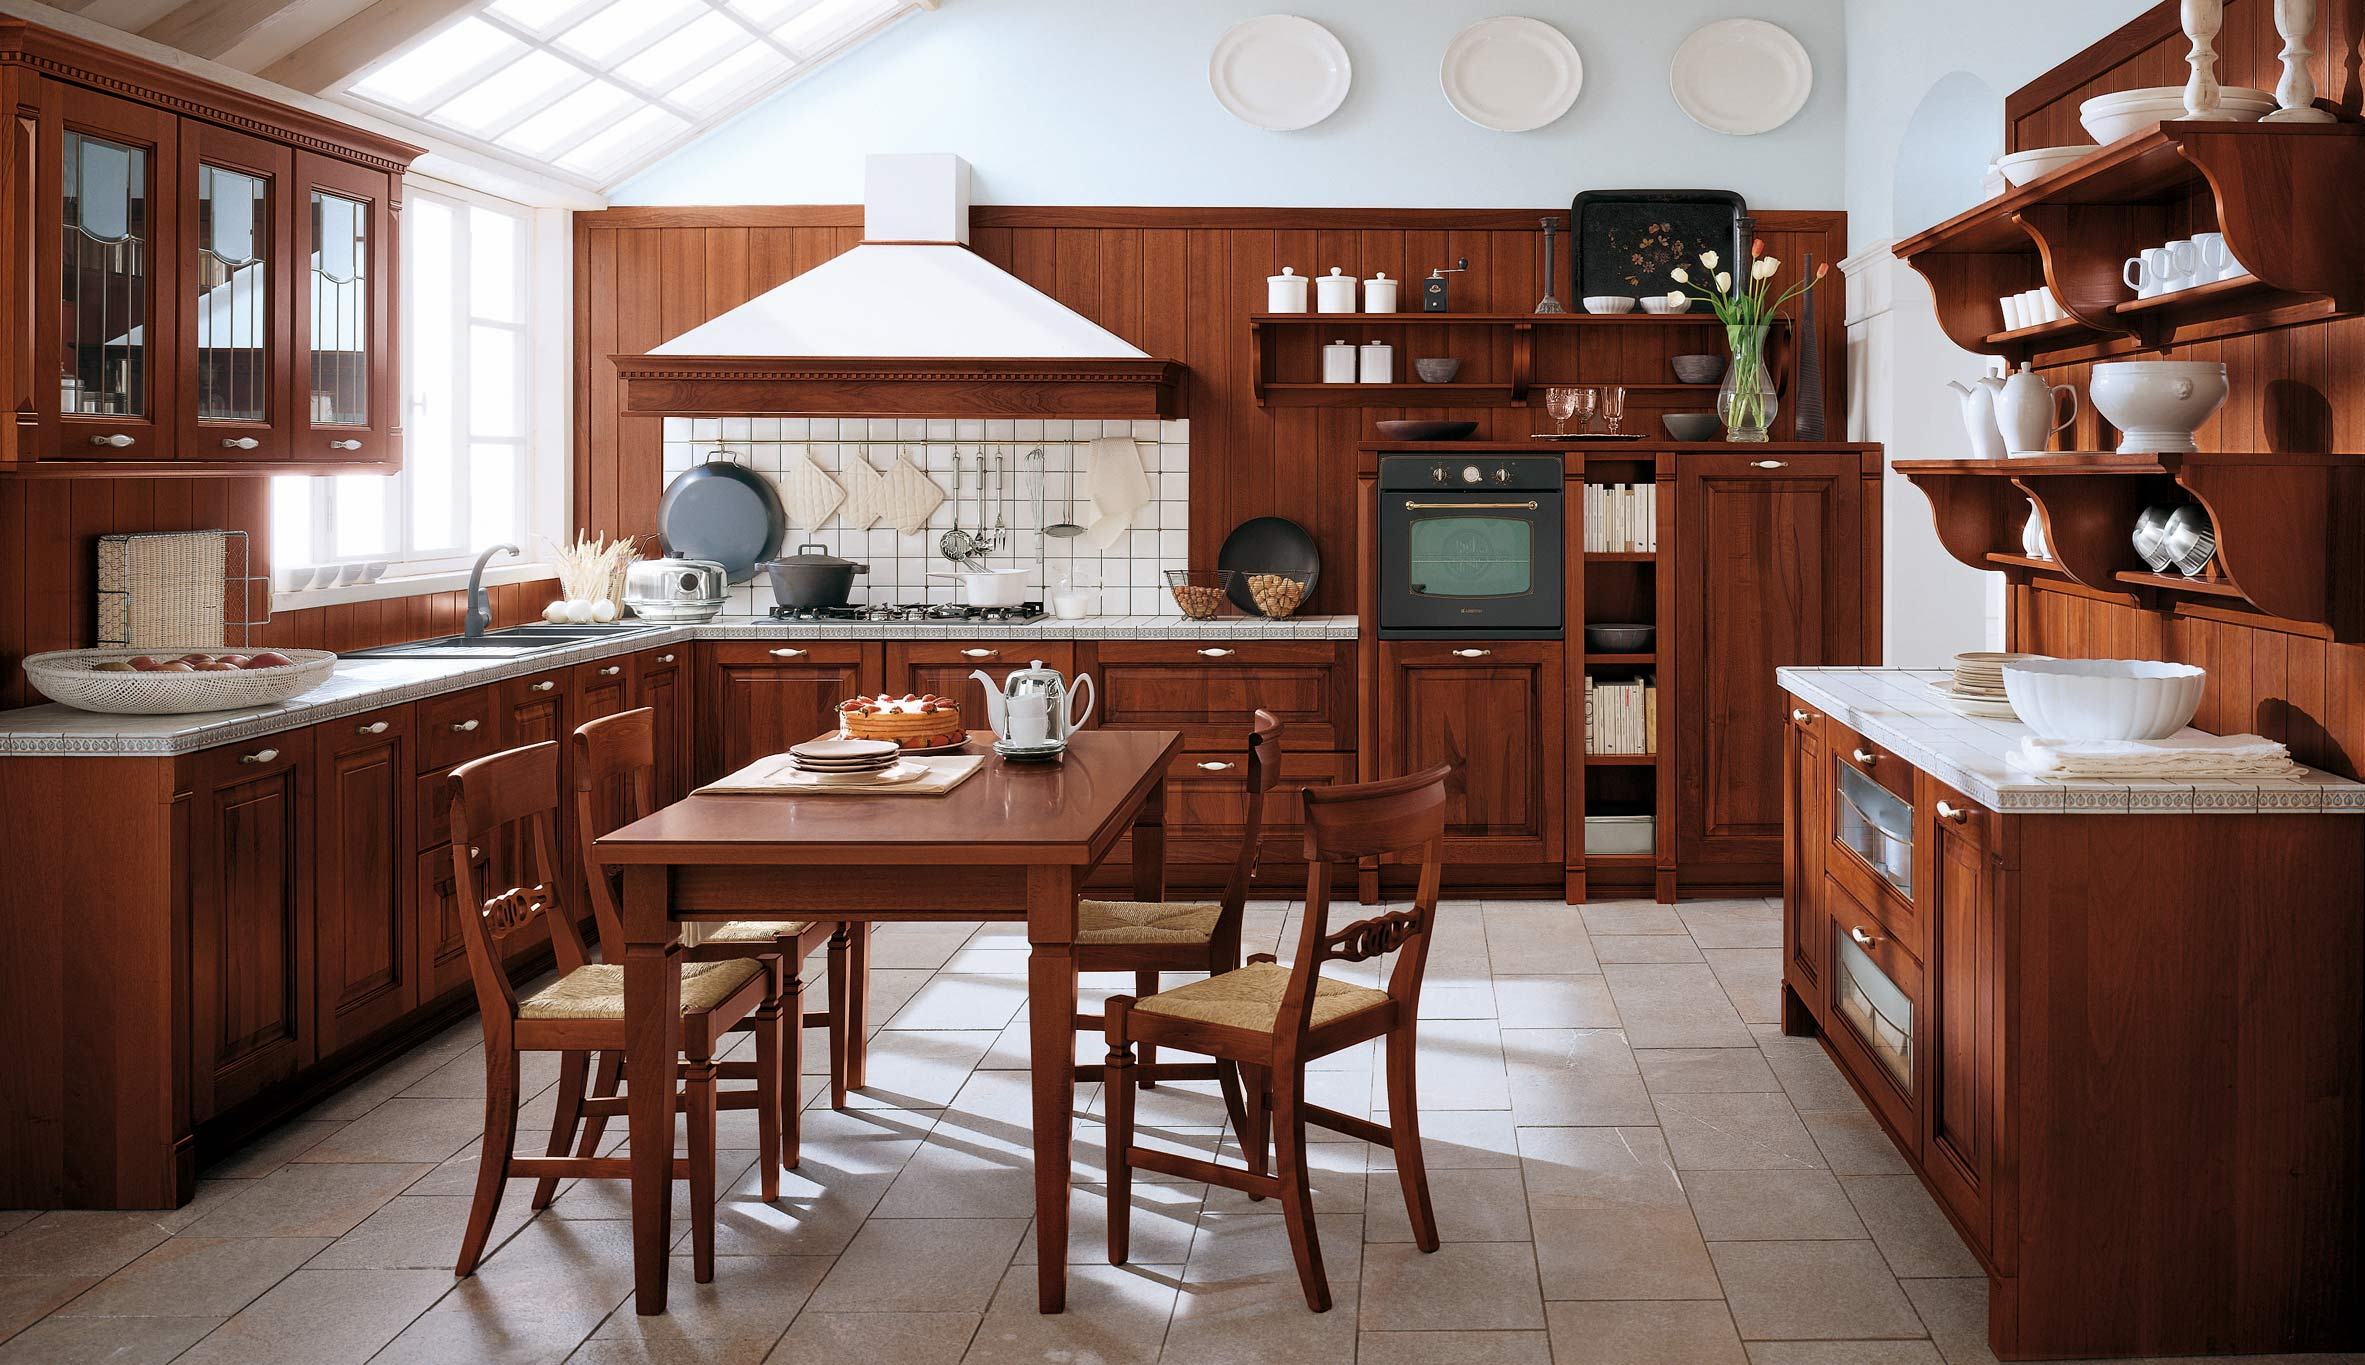 brown anastasia kitchen decor